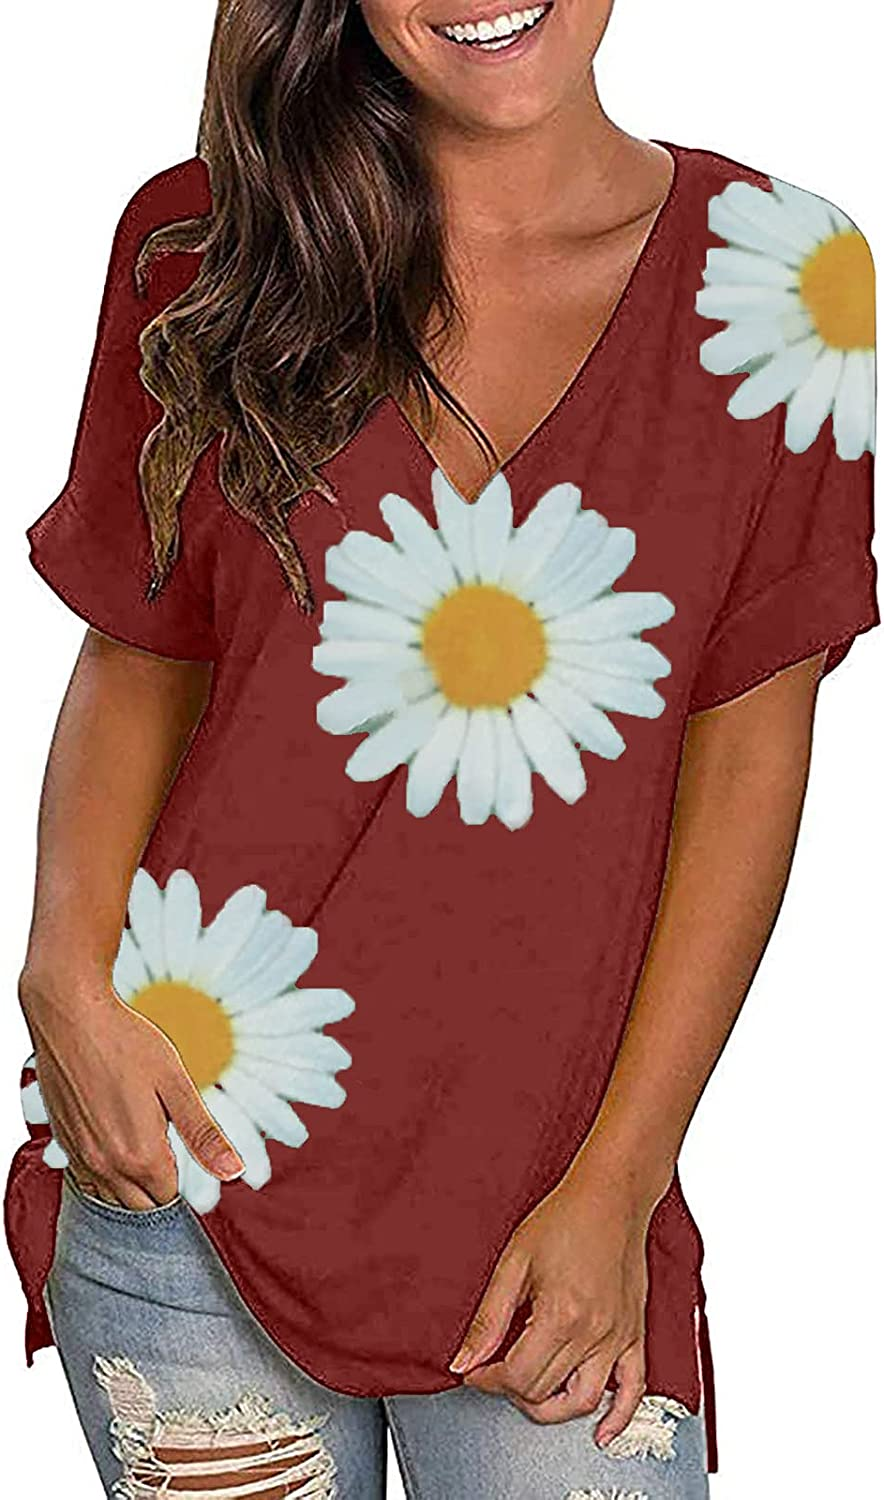 womens summer tops Sales Short Popular products Sleeve Shirts V-Neck Sunflower Print T